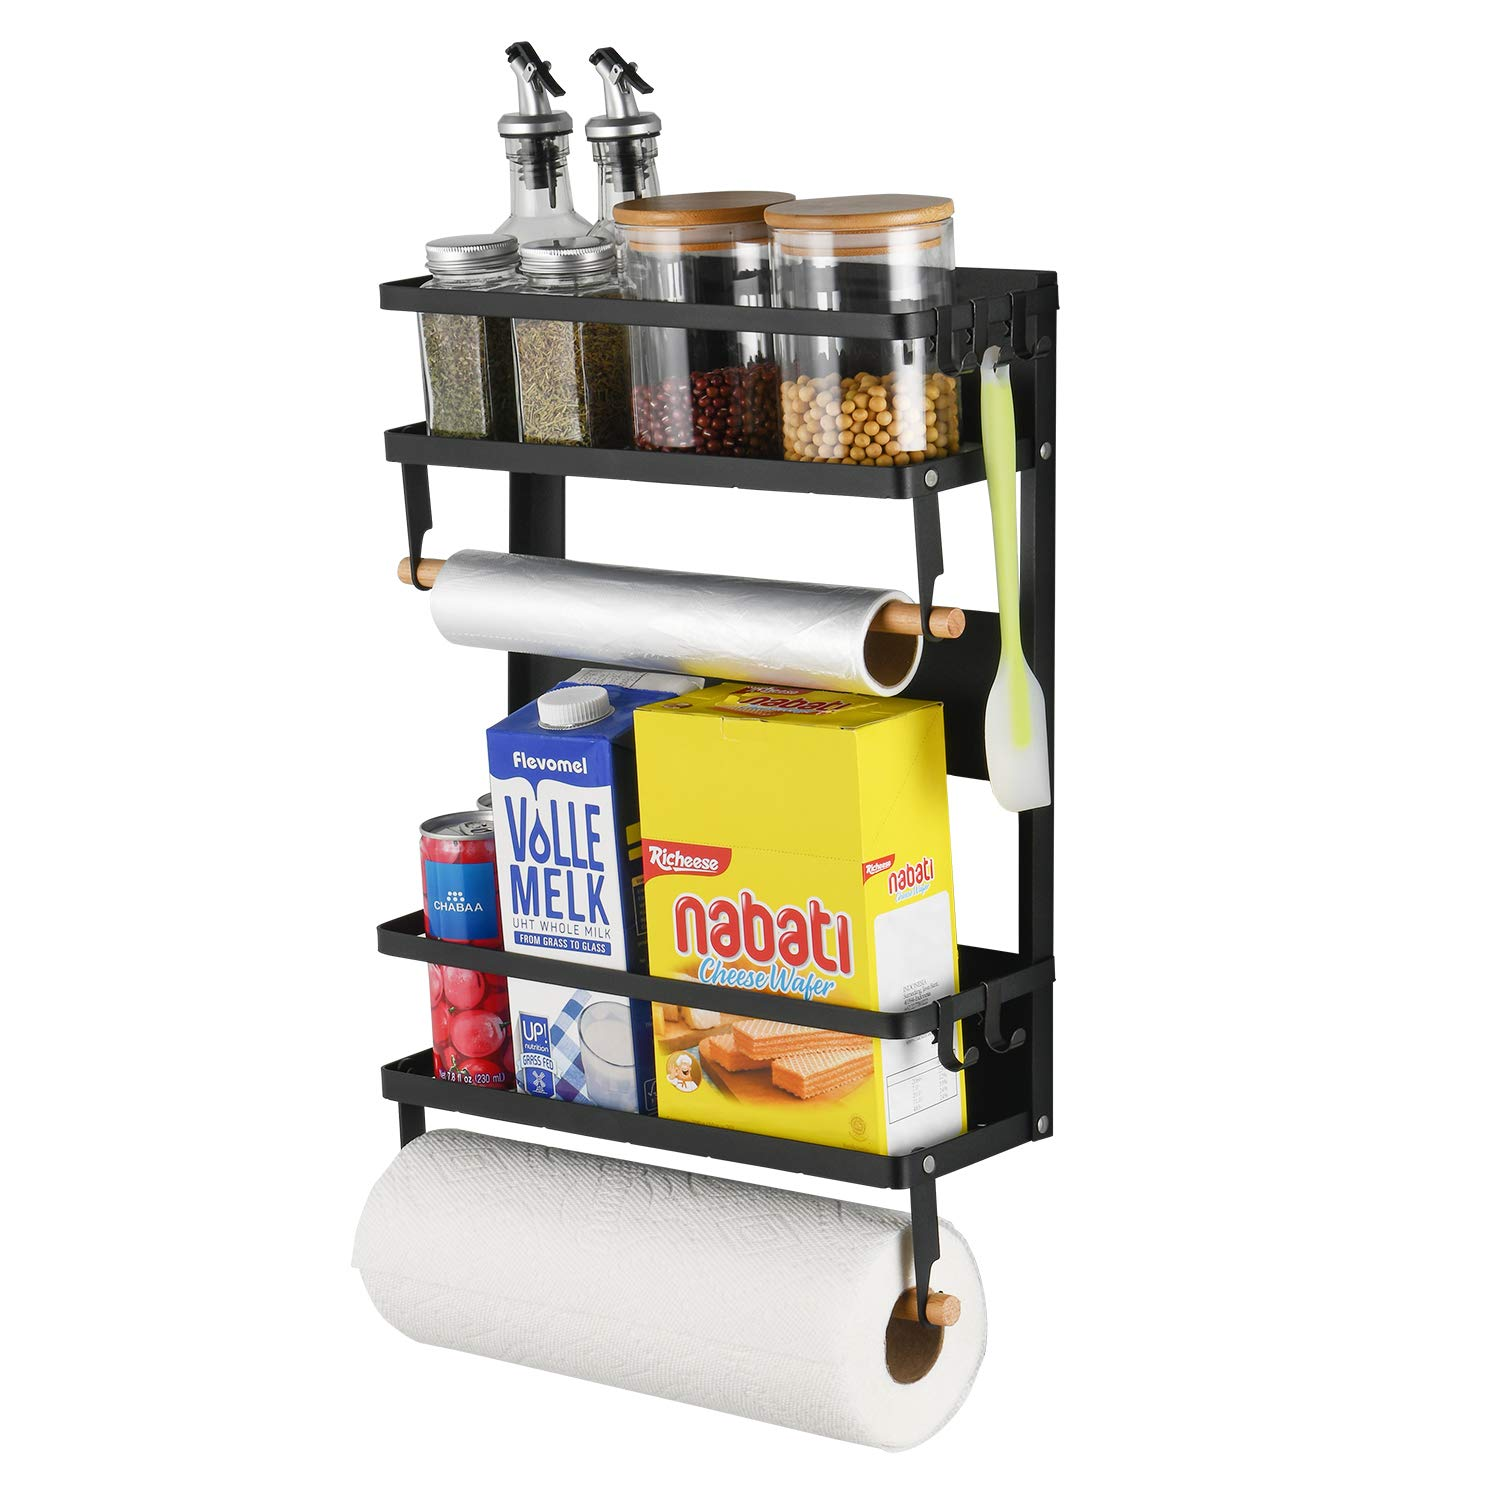 X-Chef Magnetic Spice Rack for Refrigerator, Multi-Tier Magnetic Shelf with 2 Paper Towel Holders and 5 Removable Hooks for Refrigerator & Washing Machine, Black